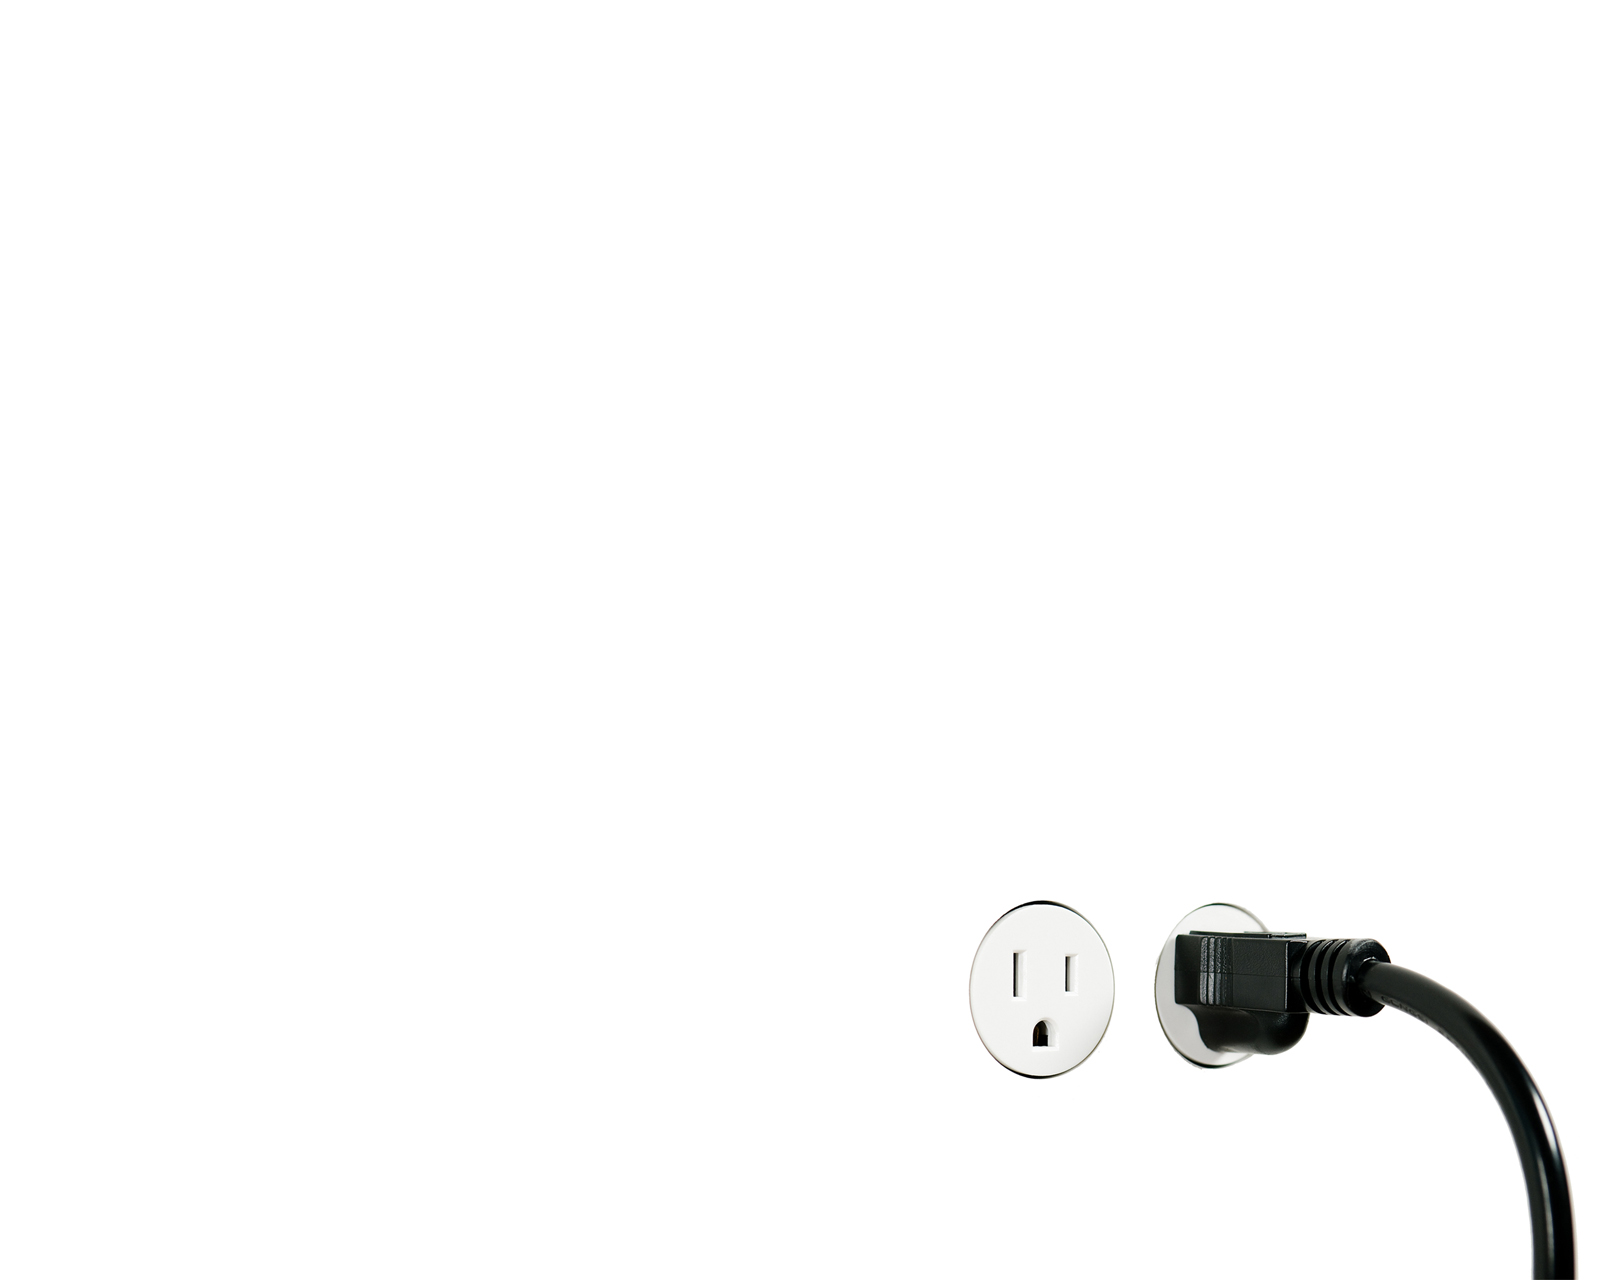 Arbel: The 22 is a complete suite of electrical wall accessories which challenge the traditional, tired and ubiquitous cover plate concept. We designed a system whereby switches and power receptacles can finally be flush with the surface of the wall and,